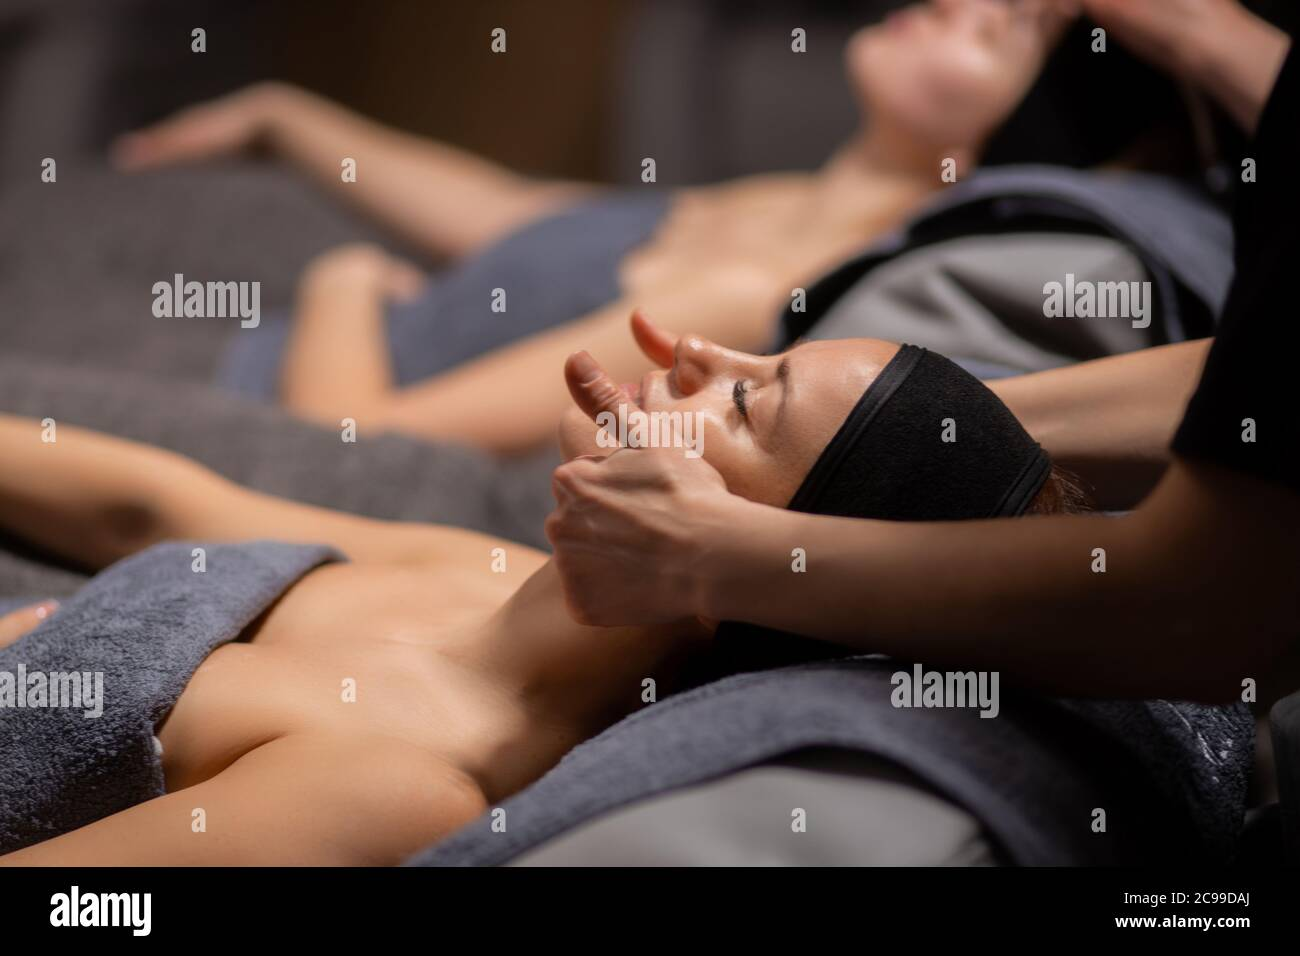 Massages gives woman professionally who How To